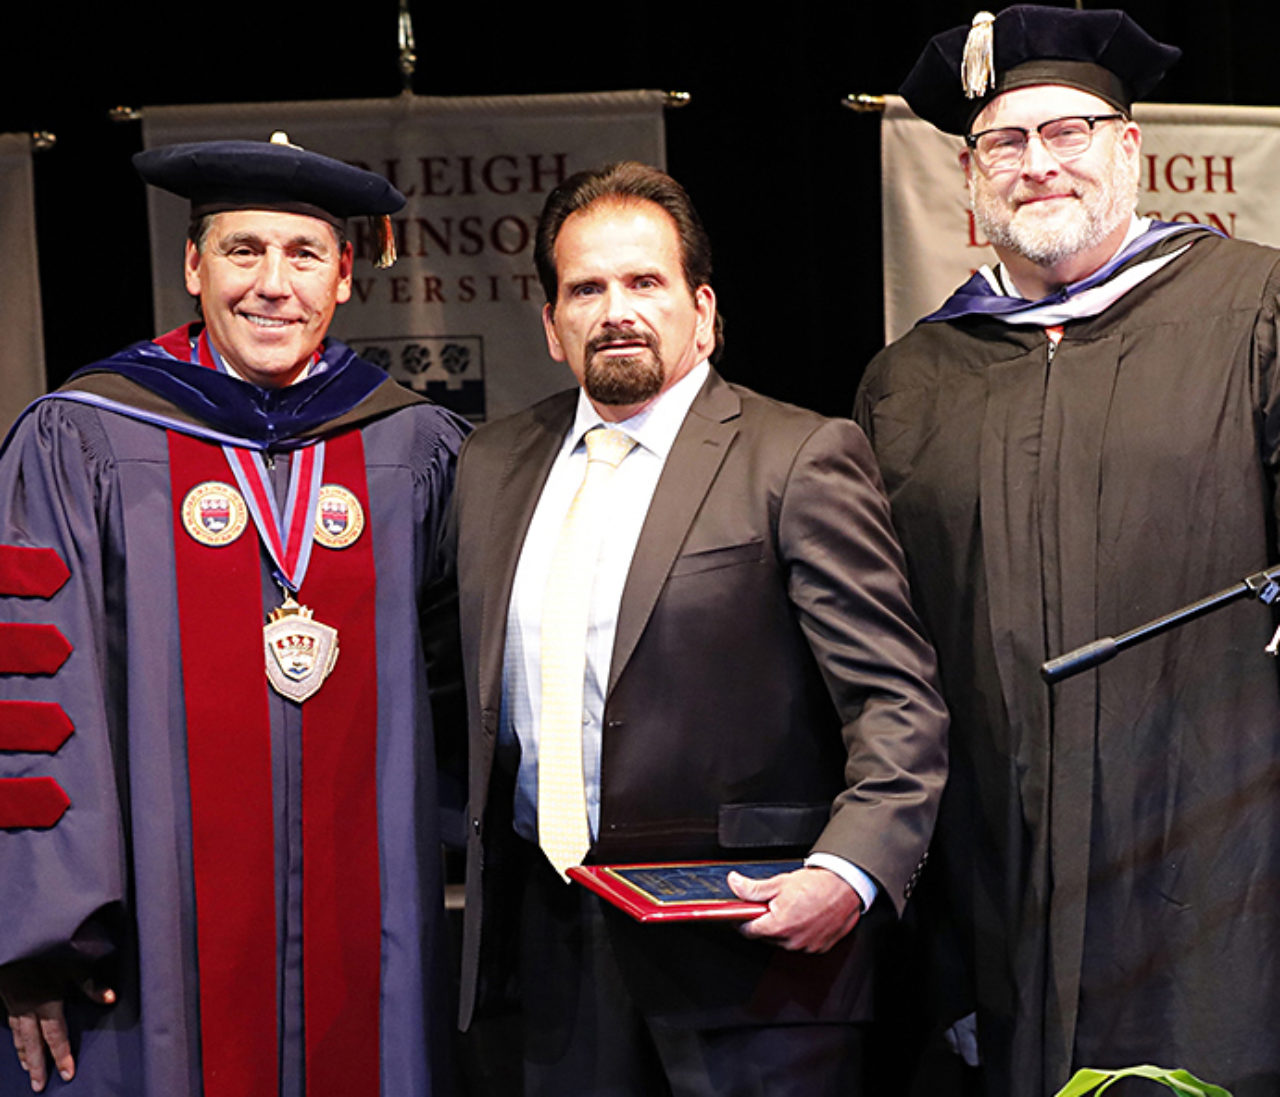 Michael Noe, flanked by University President Christopher Capuano and interim Metropolitan Campus Executive Craig Mourton, received the Pillar of FDU award